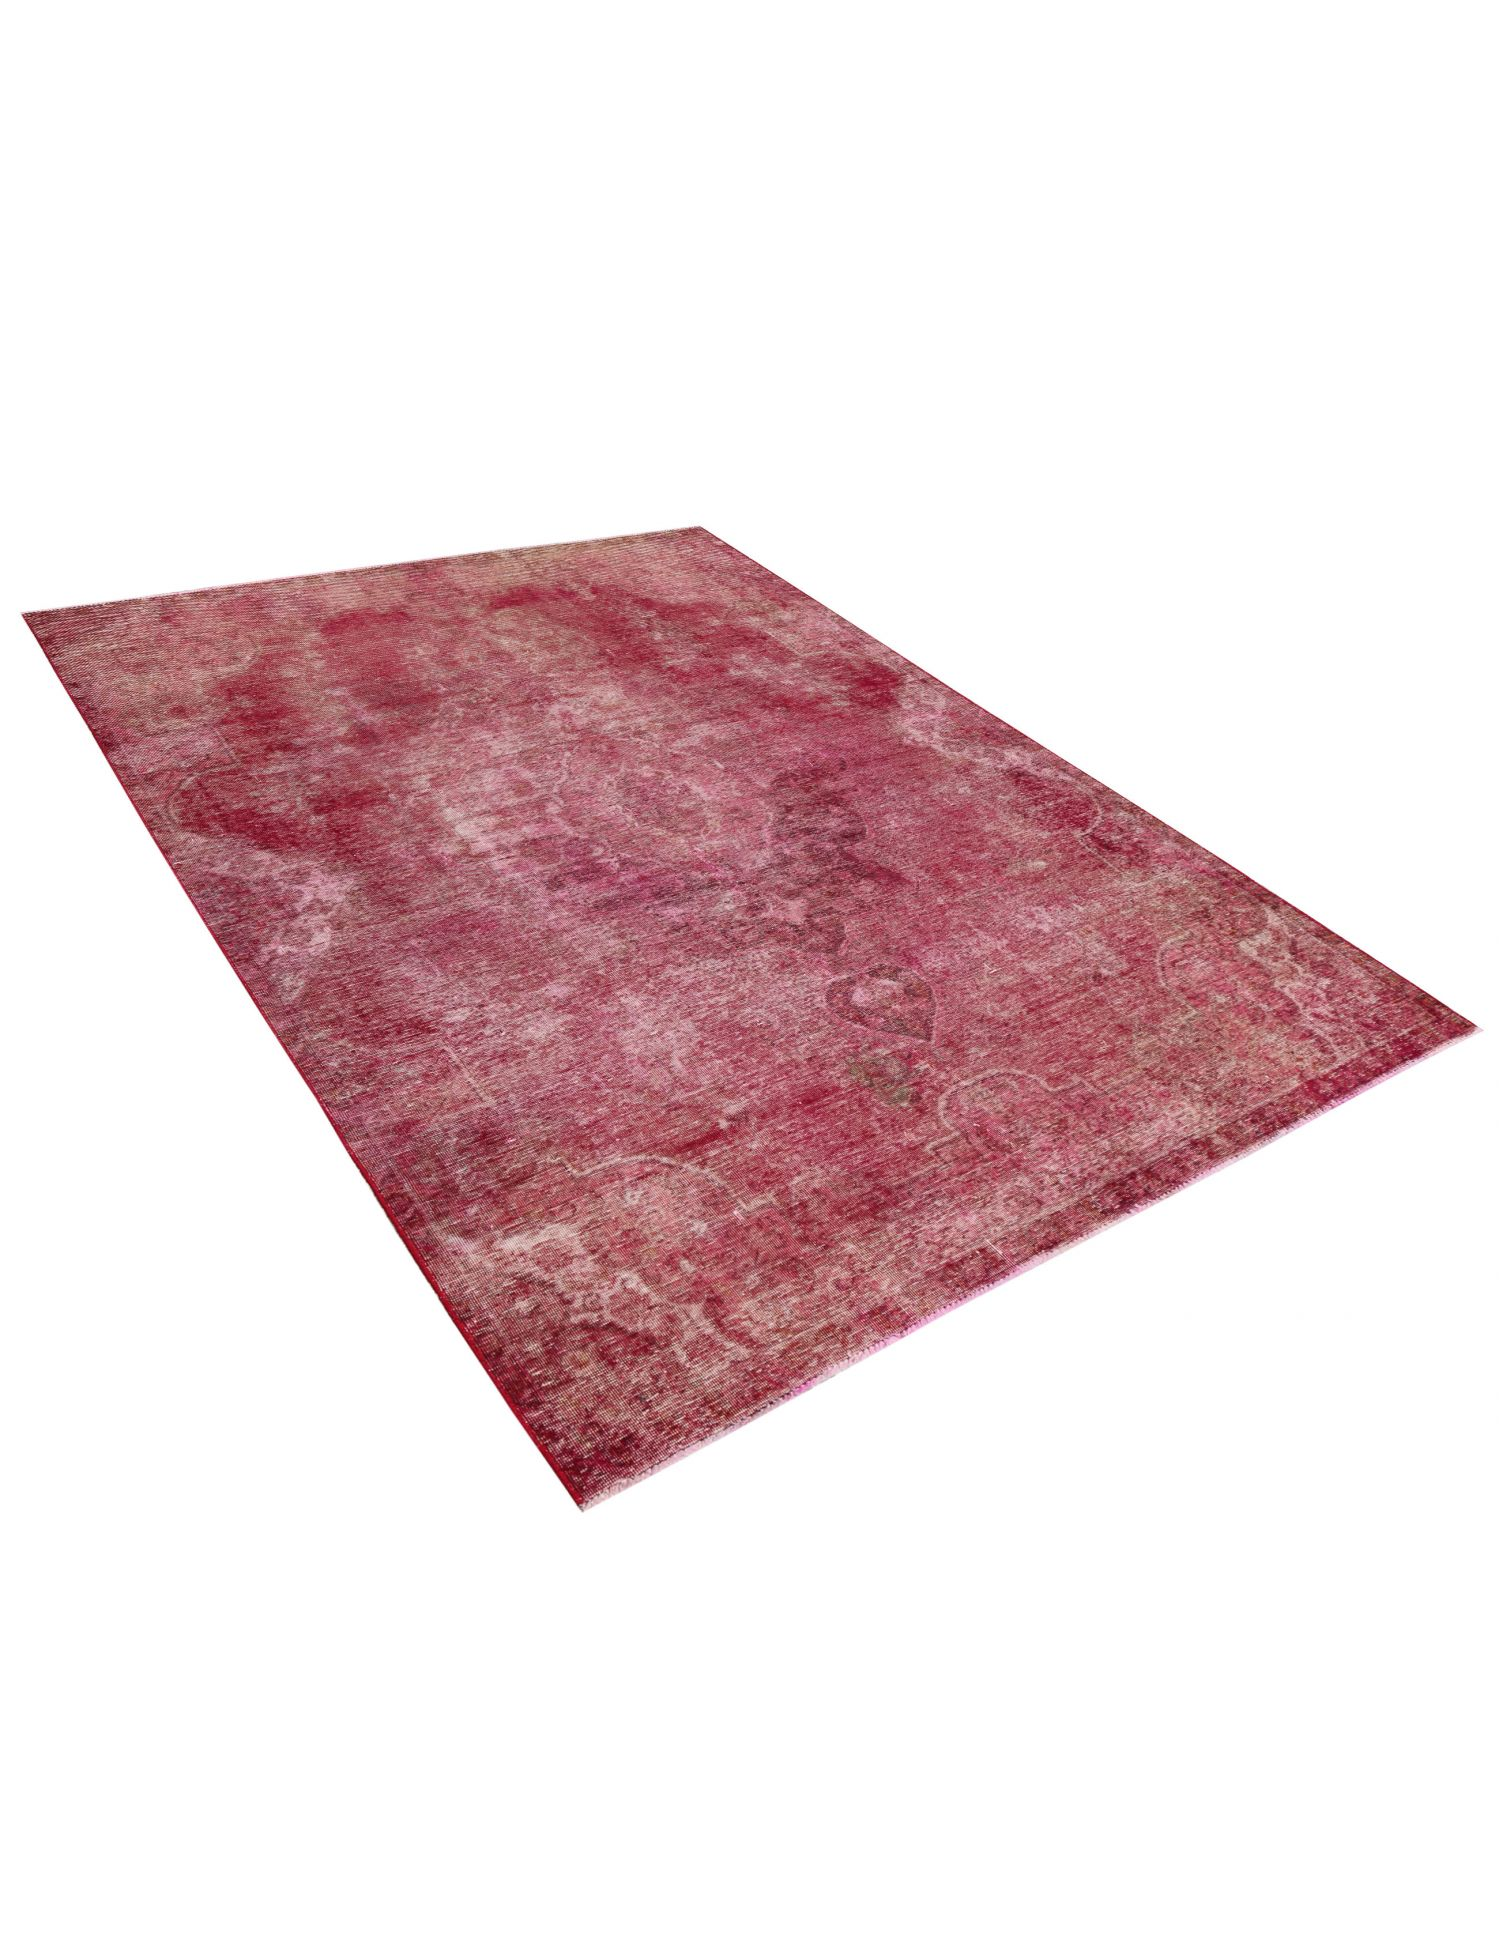 Vintage Carpet  red <br/>324 x 222 cm